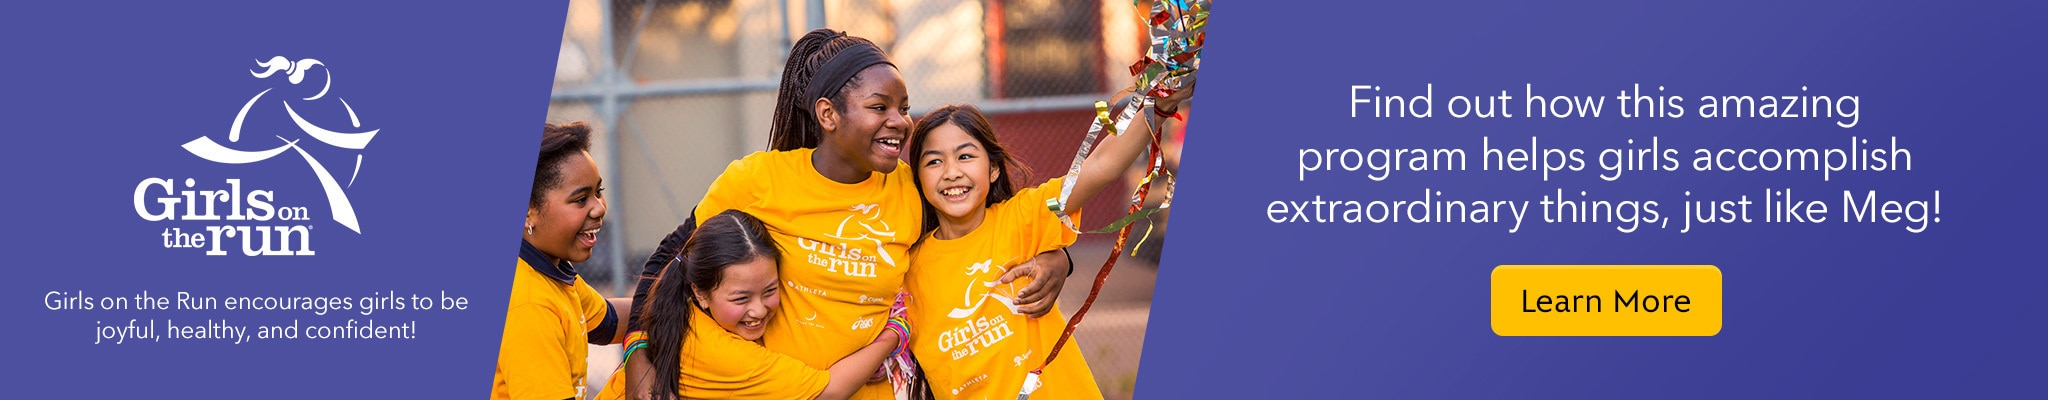 Girls on the Run | Find out how this amazing program helps girls accomplish extraordinary things, just like Meg!